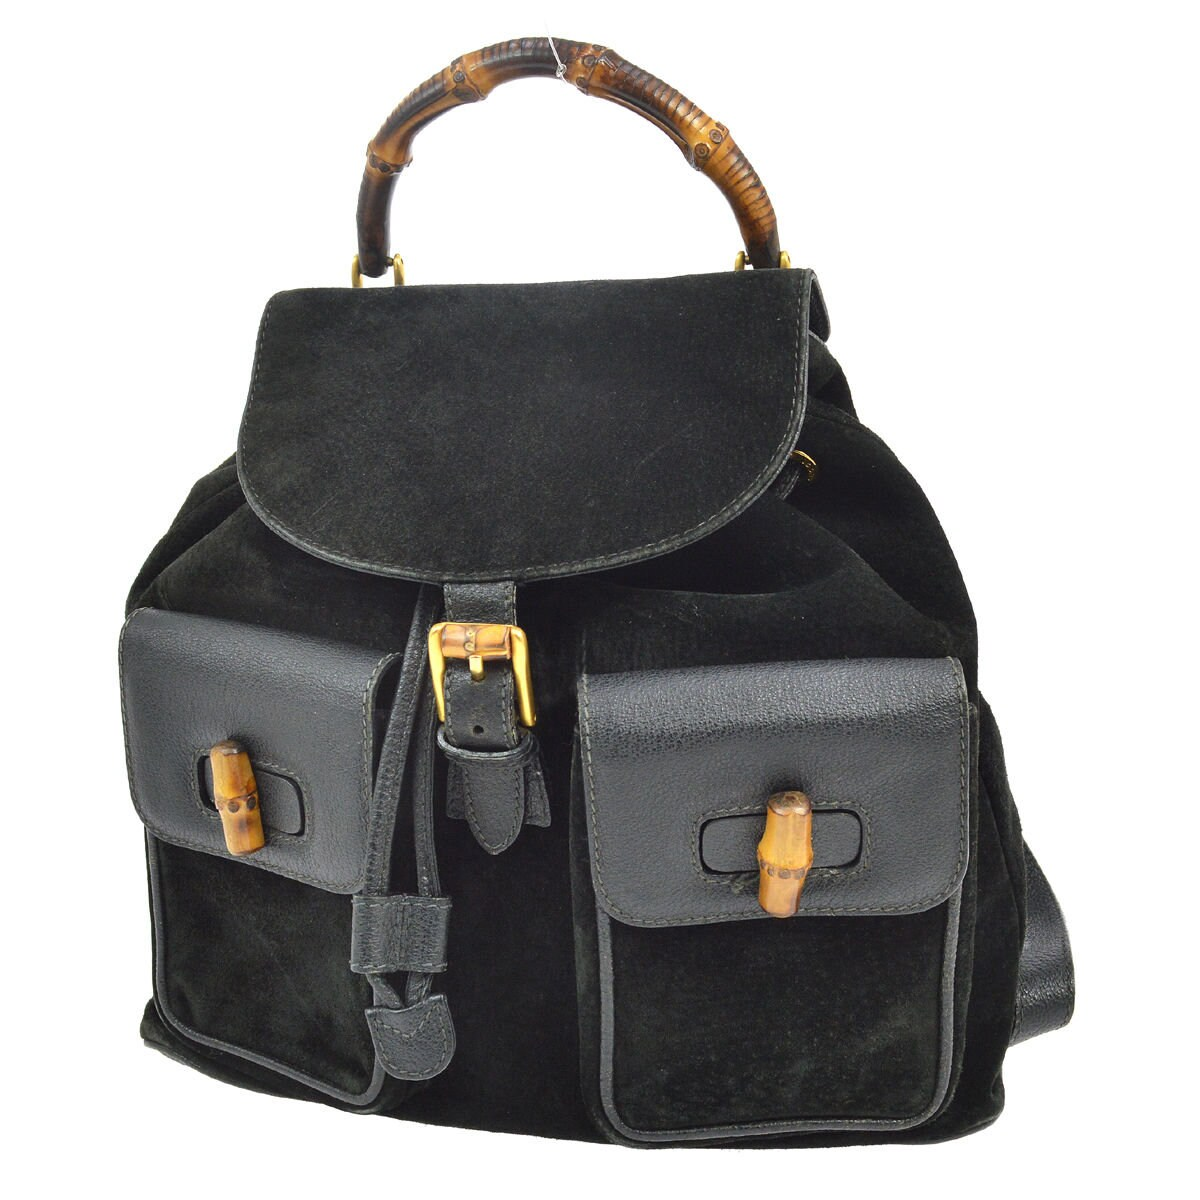 e85c023f5a0 Authentic GUCCI Black Suede Leather Bamboo Handle Backpack Bag